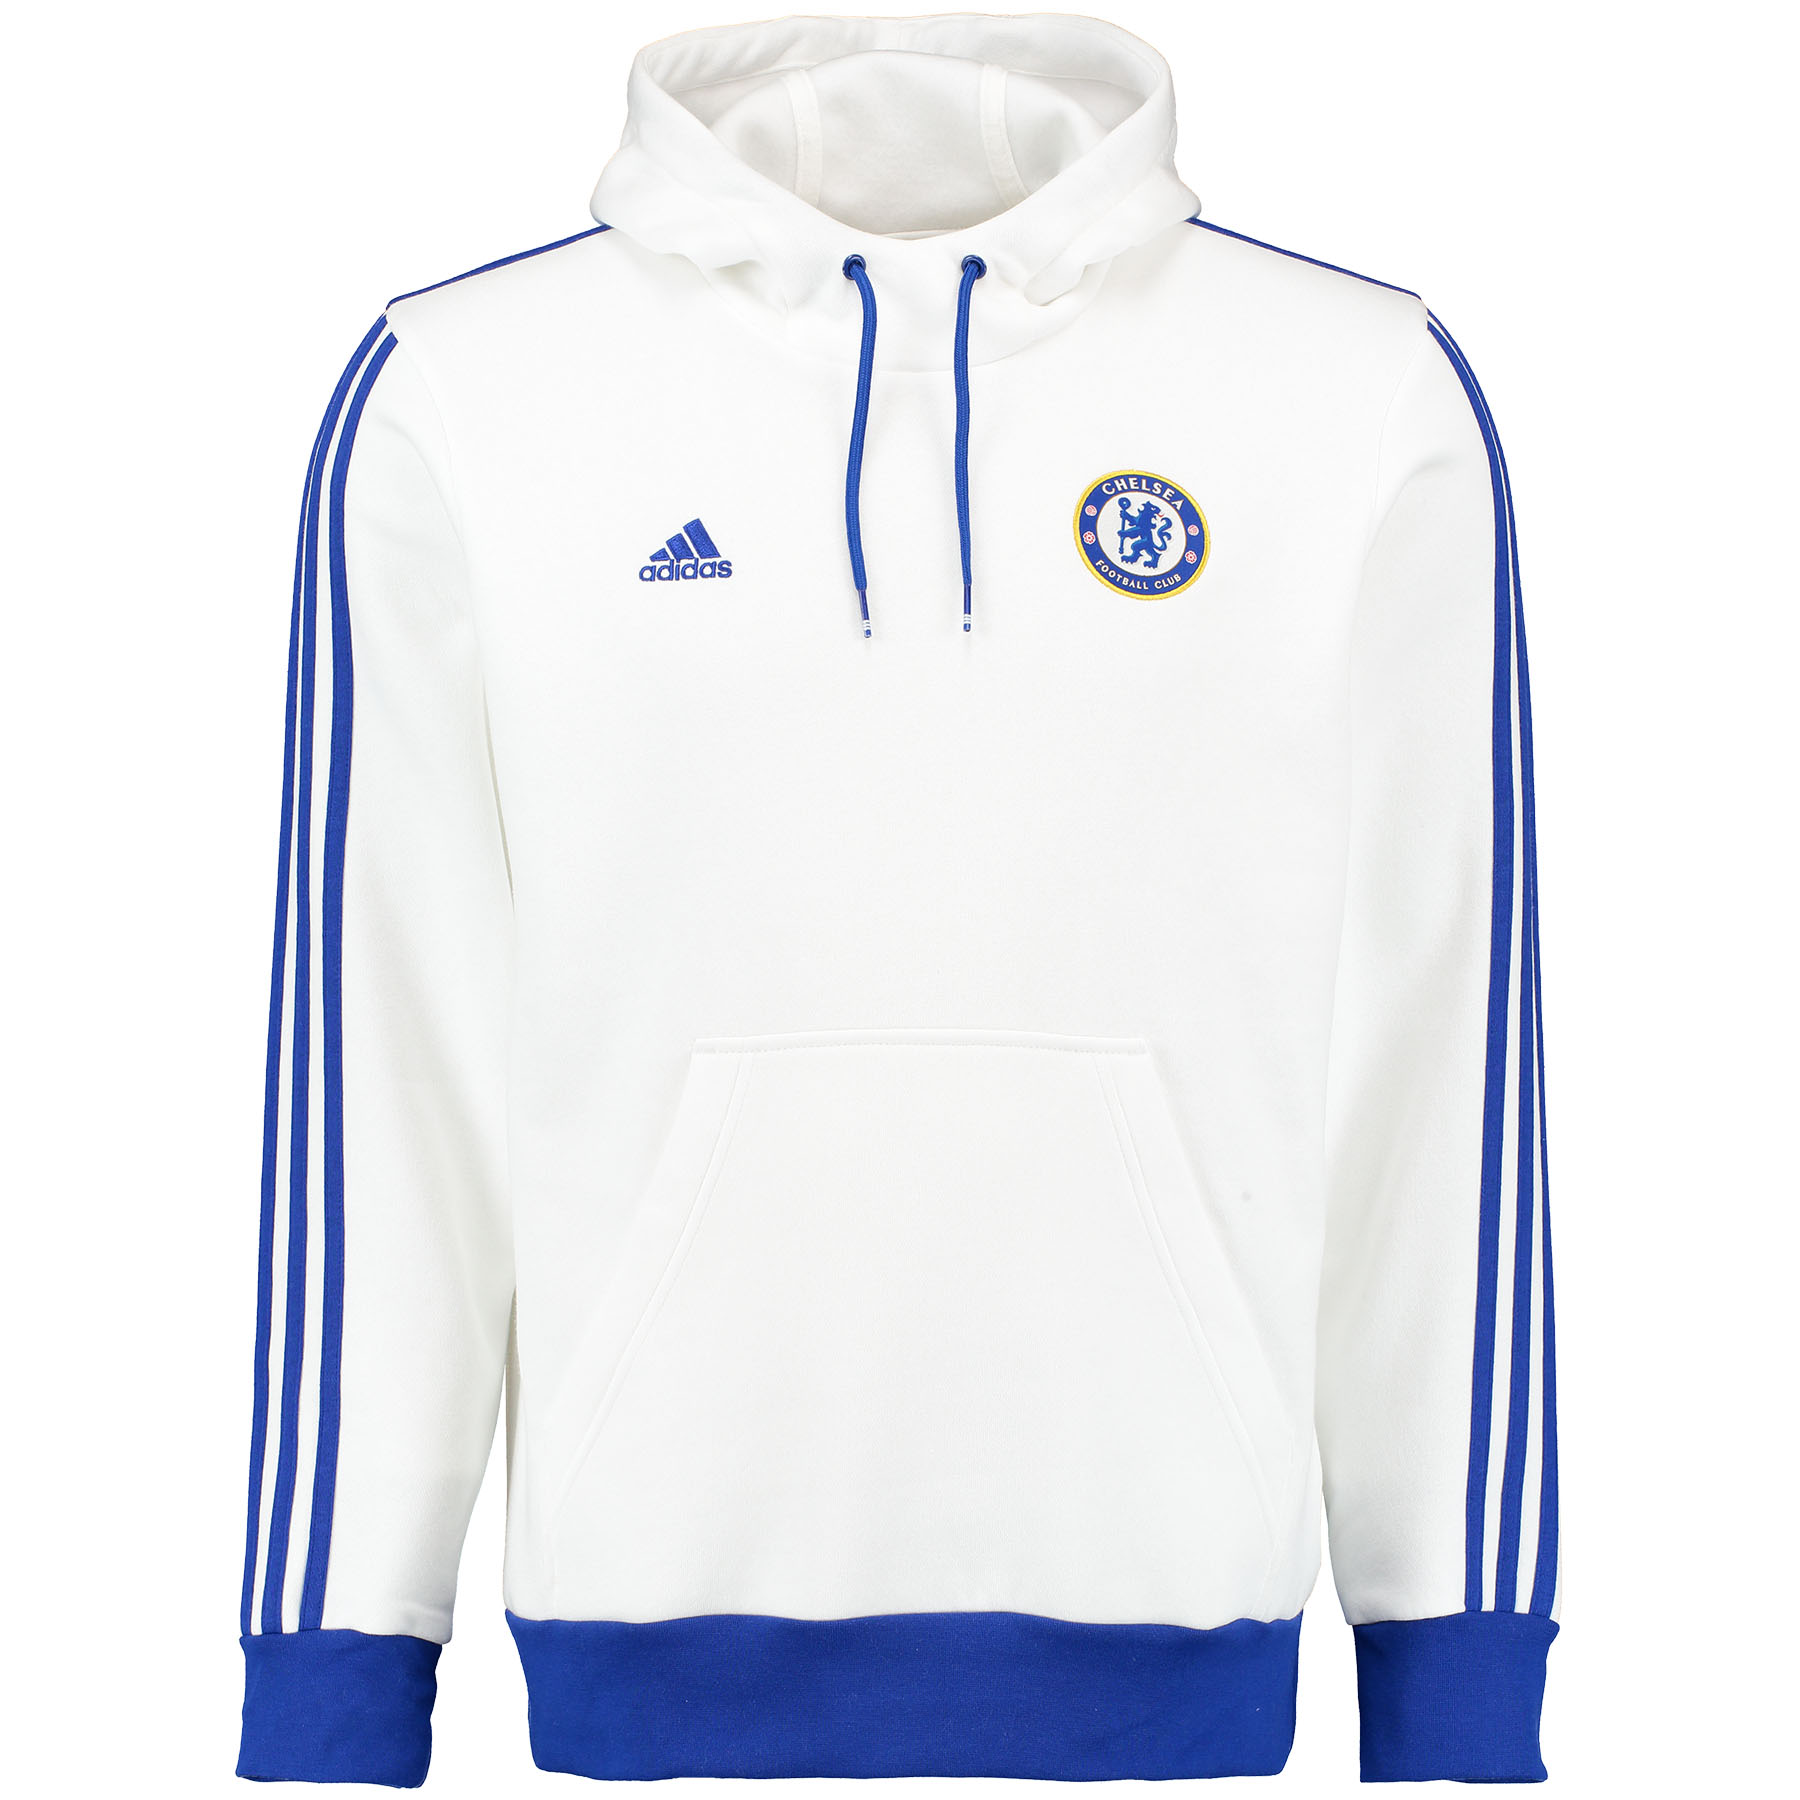 Chelsea Core Hooded Top - White As Chelsea lights up the pitch, you can cheer them on in this men's football hoody. Showing off their team badge on the chest, the sweatshirt features a kangaroo pocket and a drawcord hood.   Styled in white with blue contrast ribbed cuffs and hem, this Chelsea hoody is the ideal choice for a fan.   Benefits of this Chelsea Core Hooded Top •Kangaroo pocket •Drawcord-adjustable hood •Contrast ribbed cuffs and hem •Chelsea woven badge on left chest •Embroidered details and adidas three stripe logo •70% cotton / 30% polyester fleece